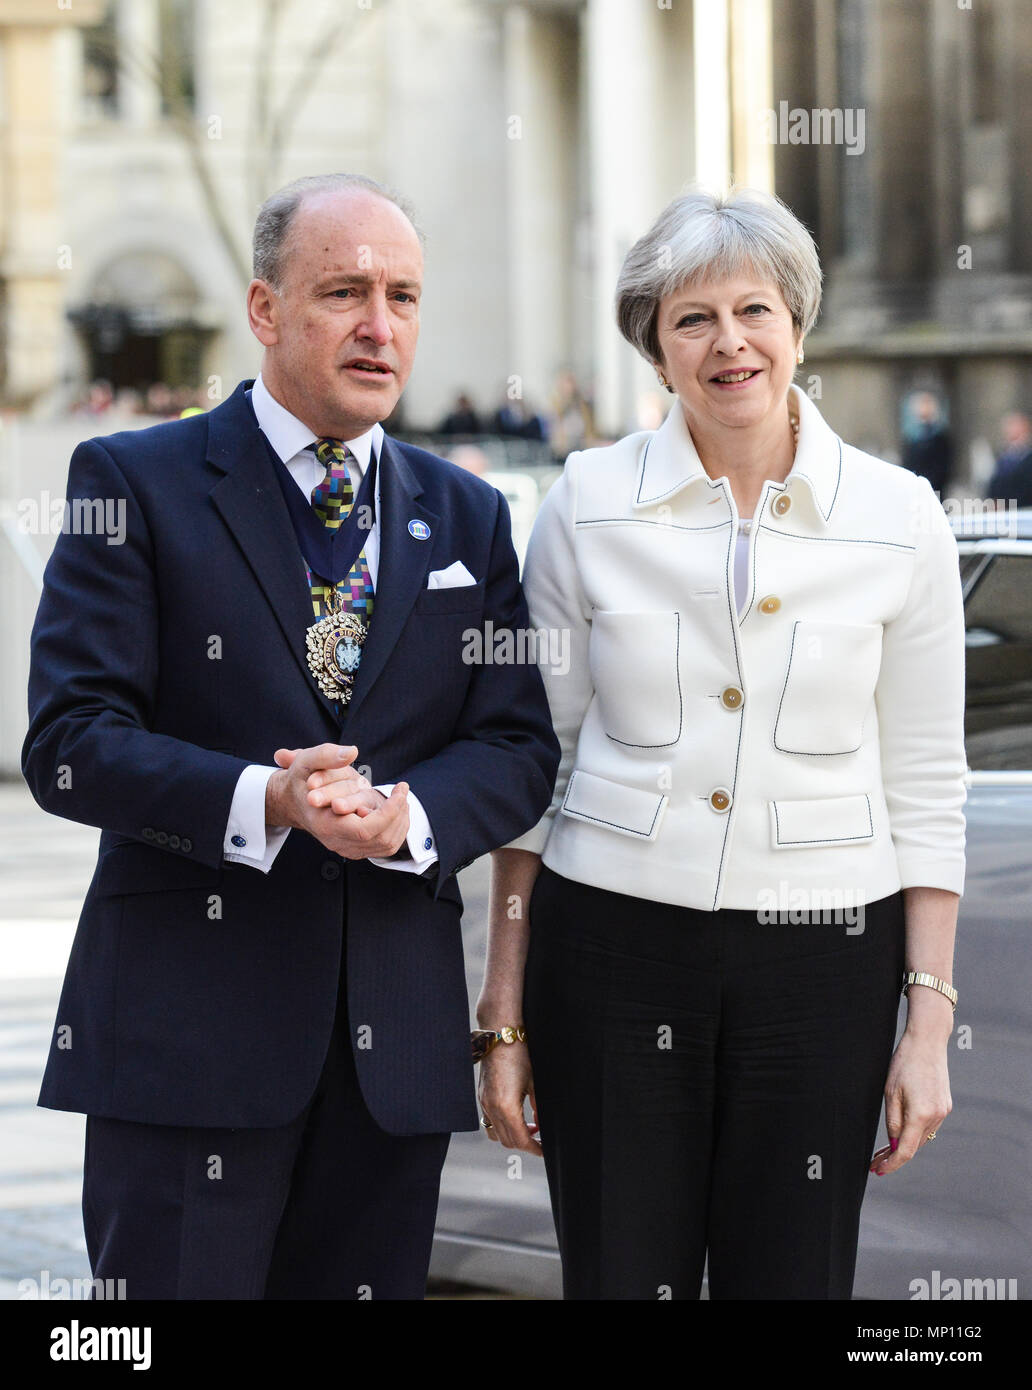 The Commonwealth Heads of Government Meeting 2018 in London, United Kingdom  Featuring: Lord Mayor Charles Bowman, Theresa May Where: London, United Kingdom When: 19 Apr 2018 Credit: WENN.com - Stock Image